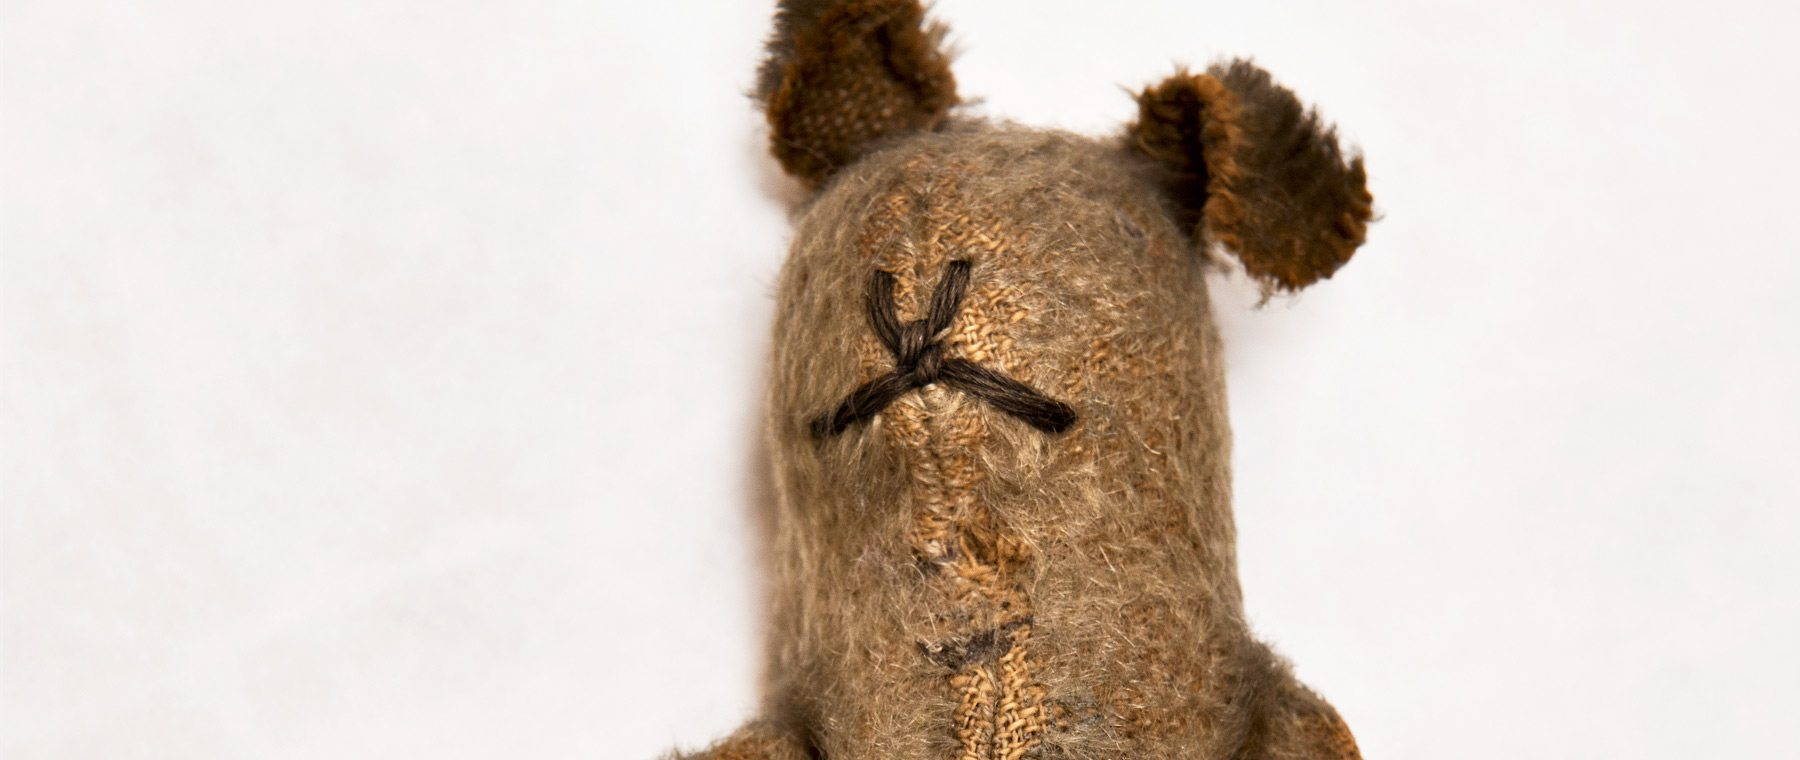 A medic's teddy bear is now a treasured reminder of separation and loss